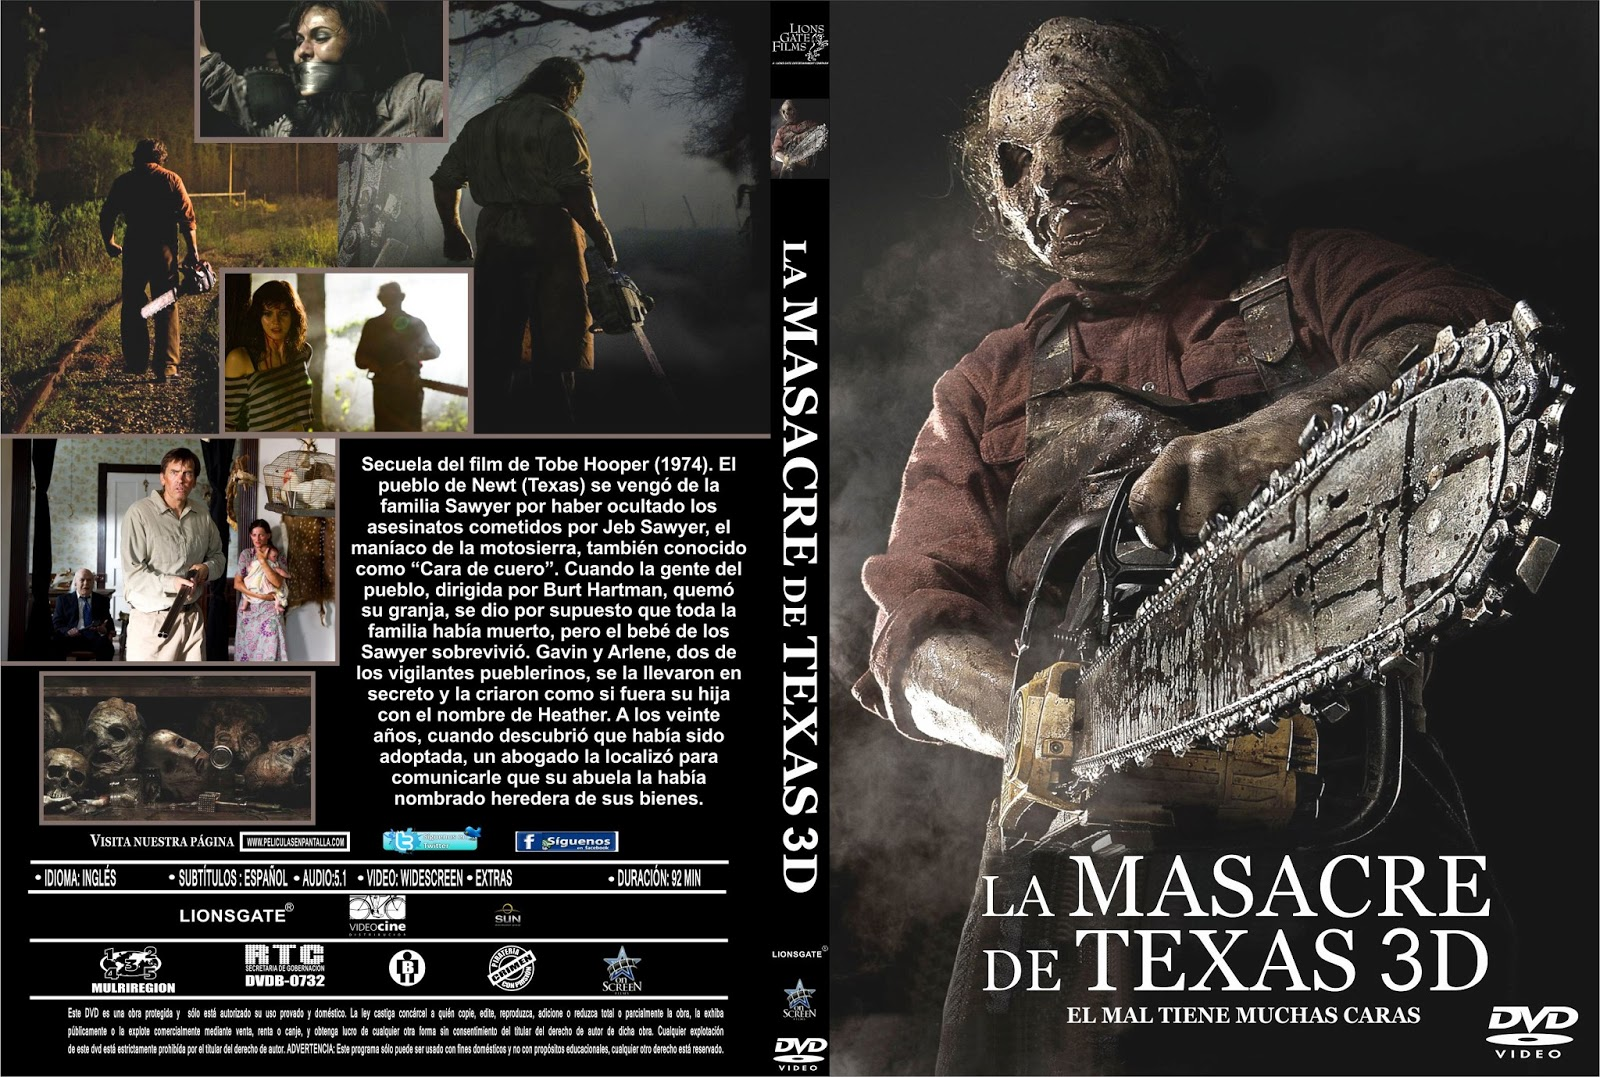 Texas Chainsaw 3D - DVDFULL LATINO